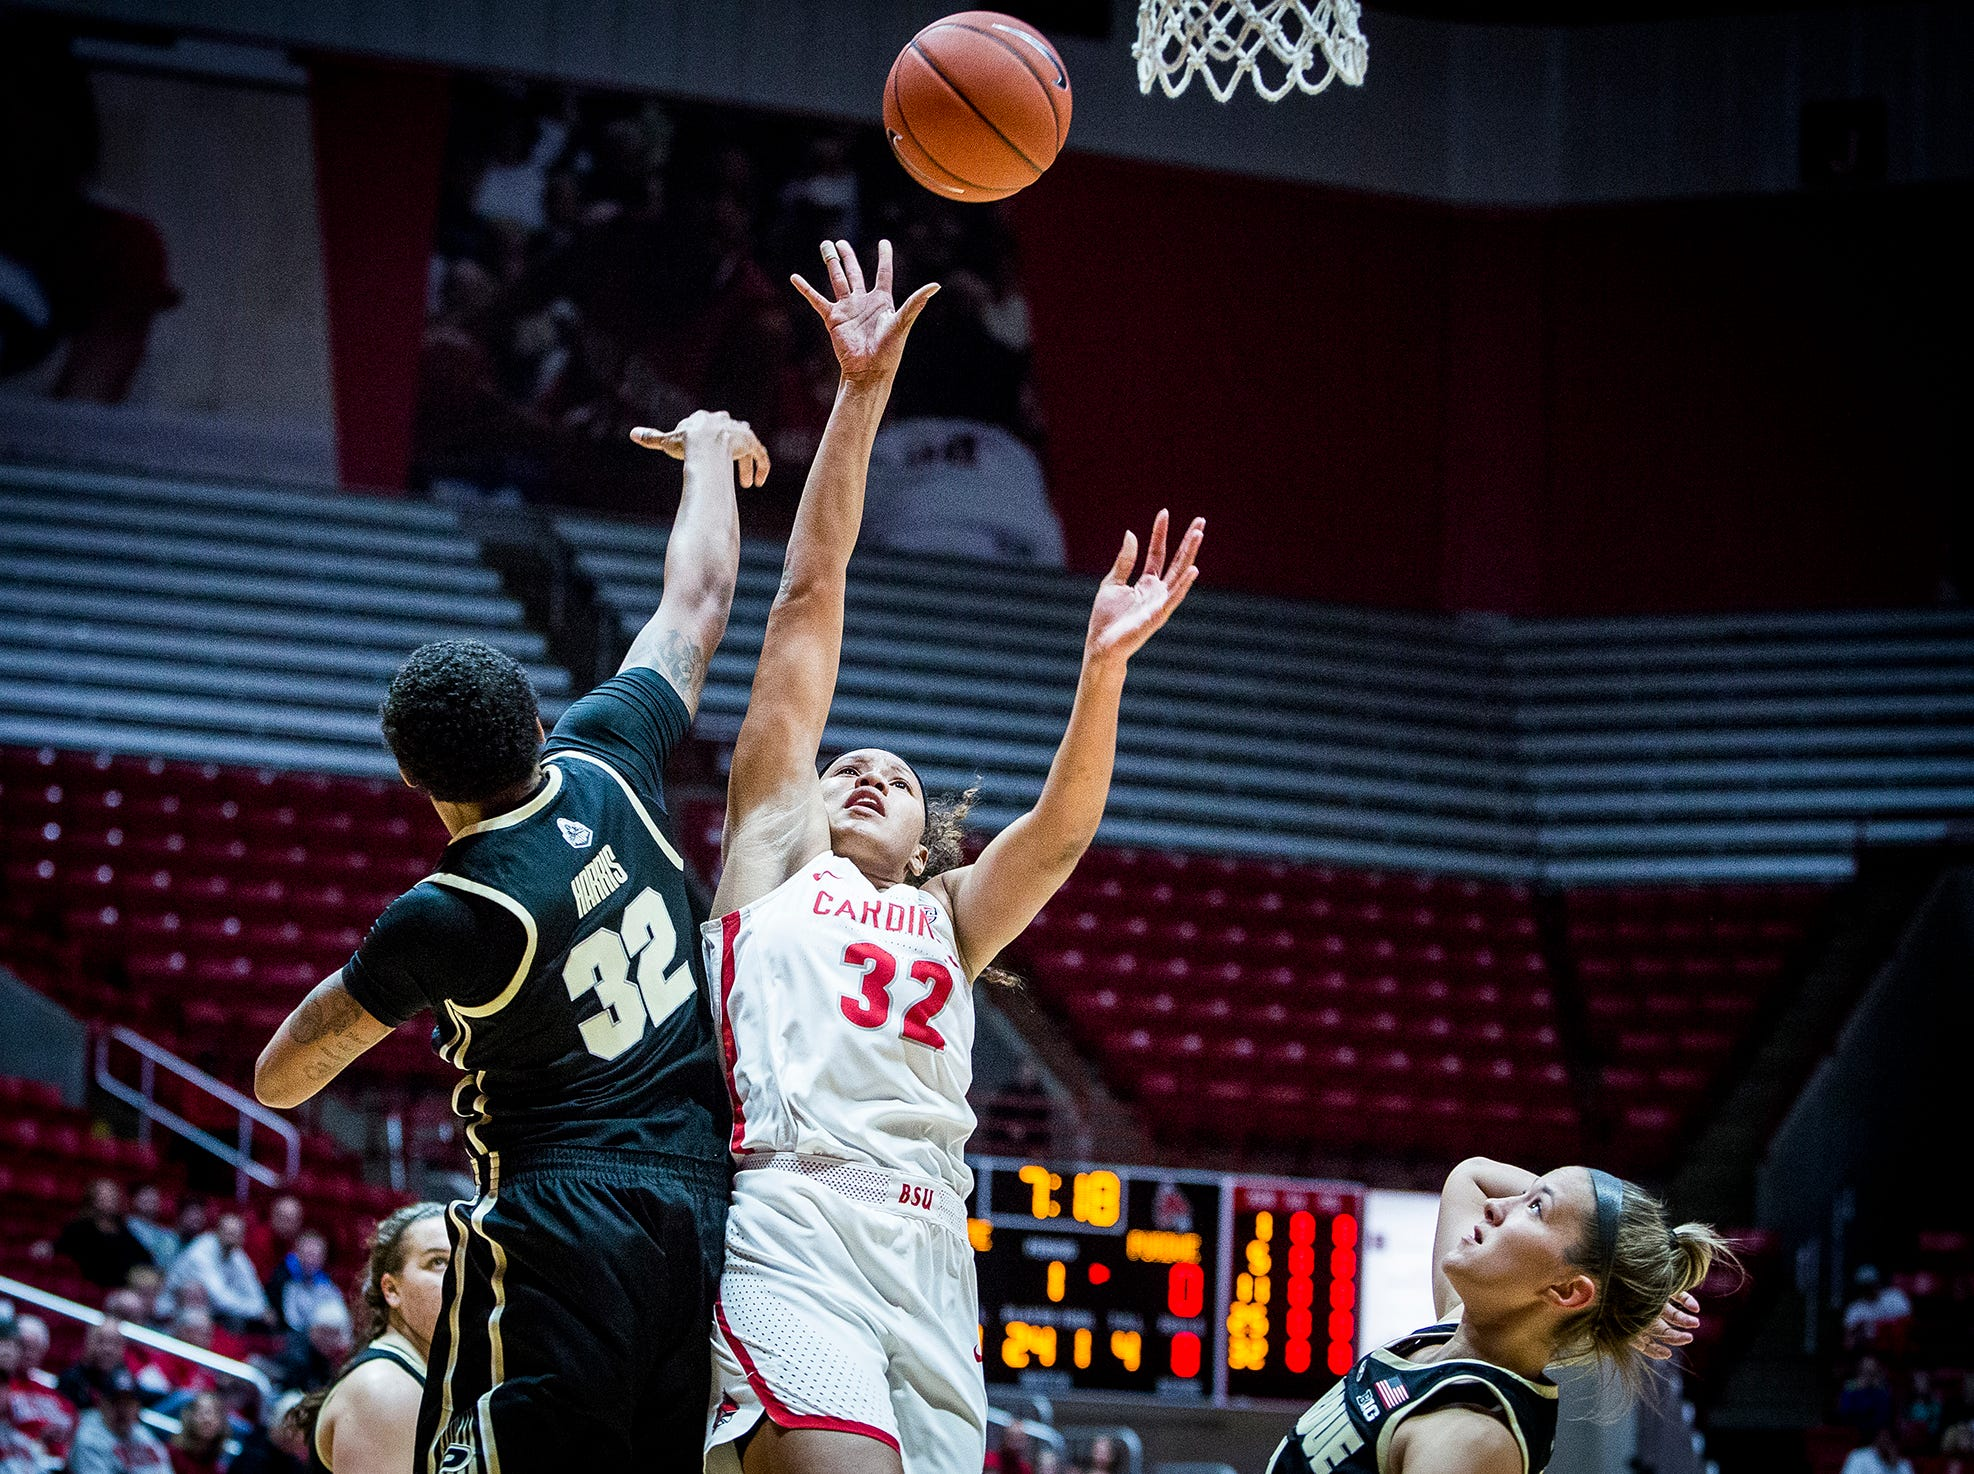 Ball State's Oshlynn Brown shoots past Purdue's defense during their game at Worthen Arena Wednesday, Nov. 7, 2018.